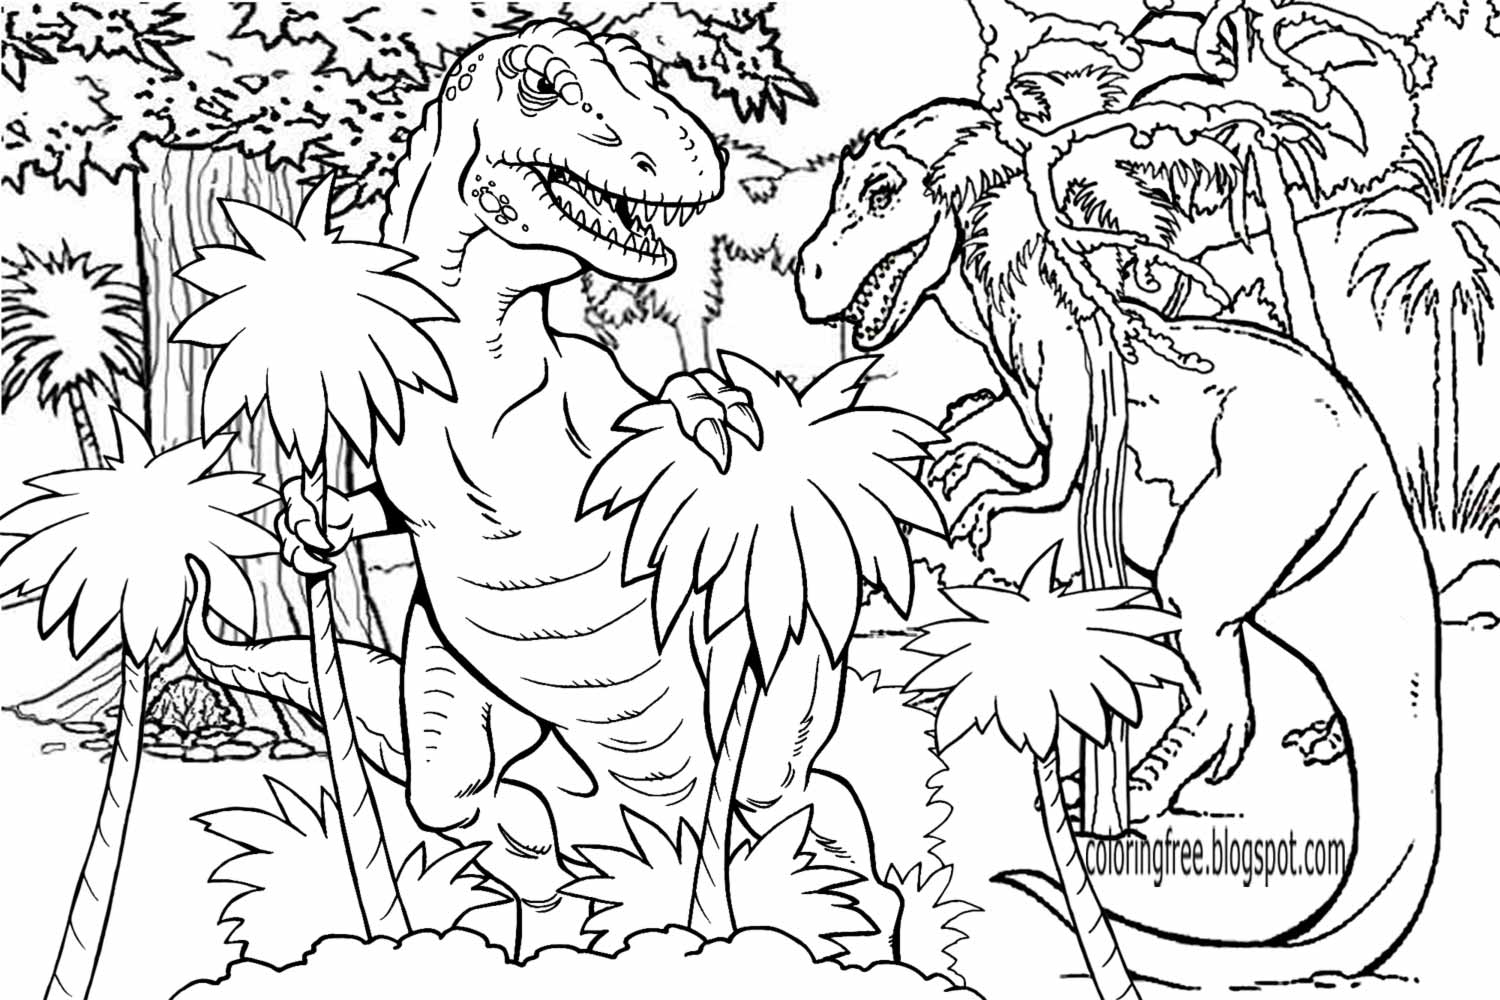 dinosaurs coloring page 20 free printable dinosaurs coloring pages coloring page dinosaurs